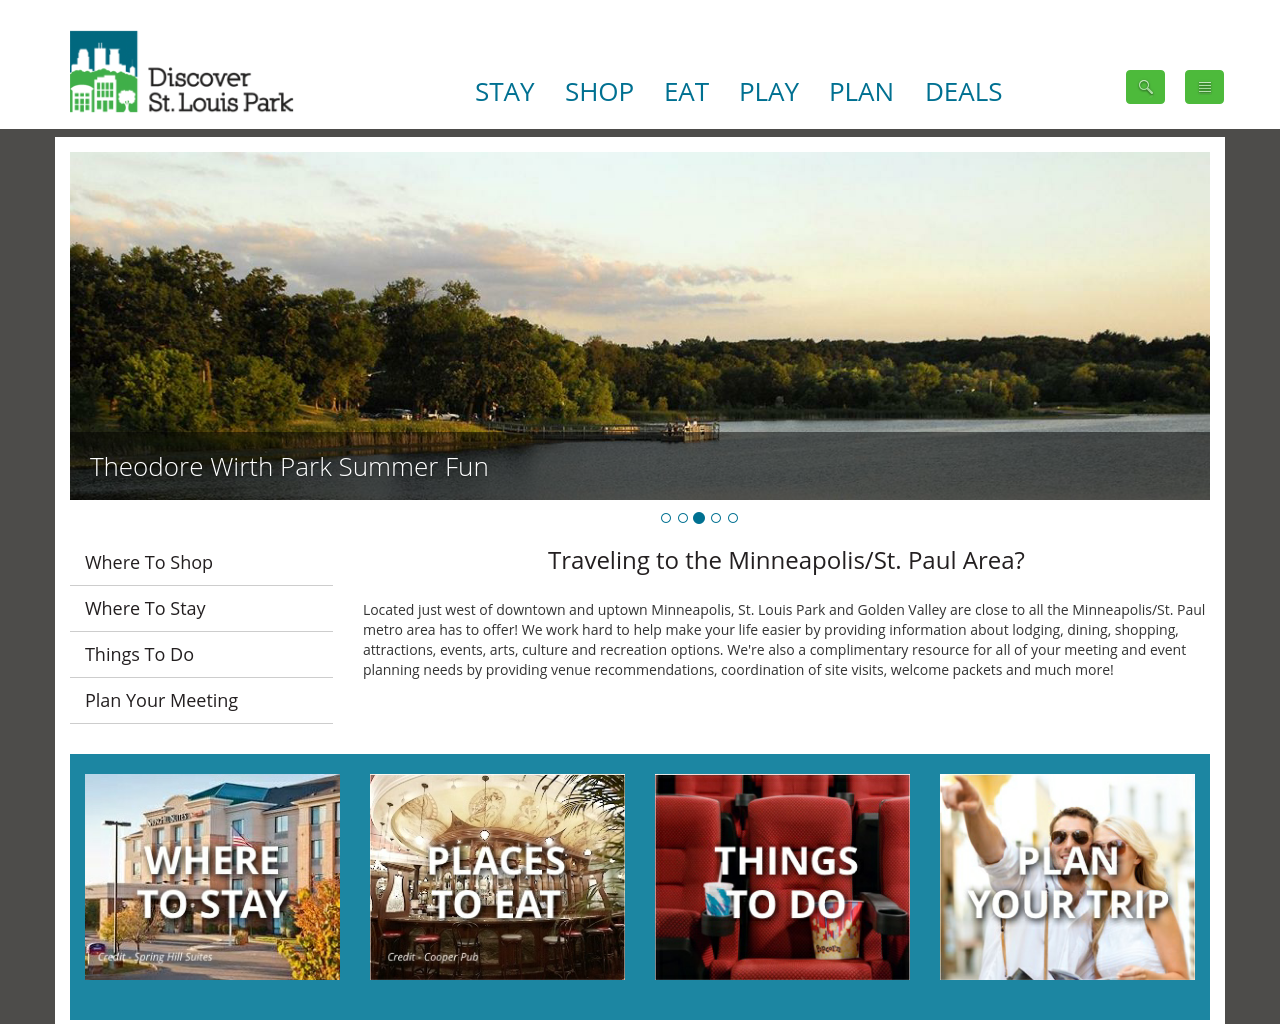 Discover-St.-Louis-Park-Advertising-Reviews-Pricing